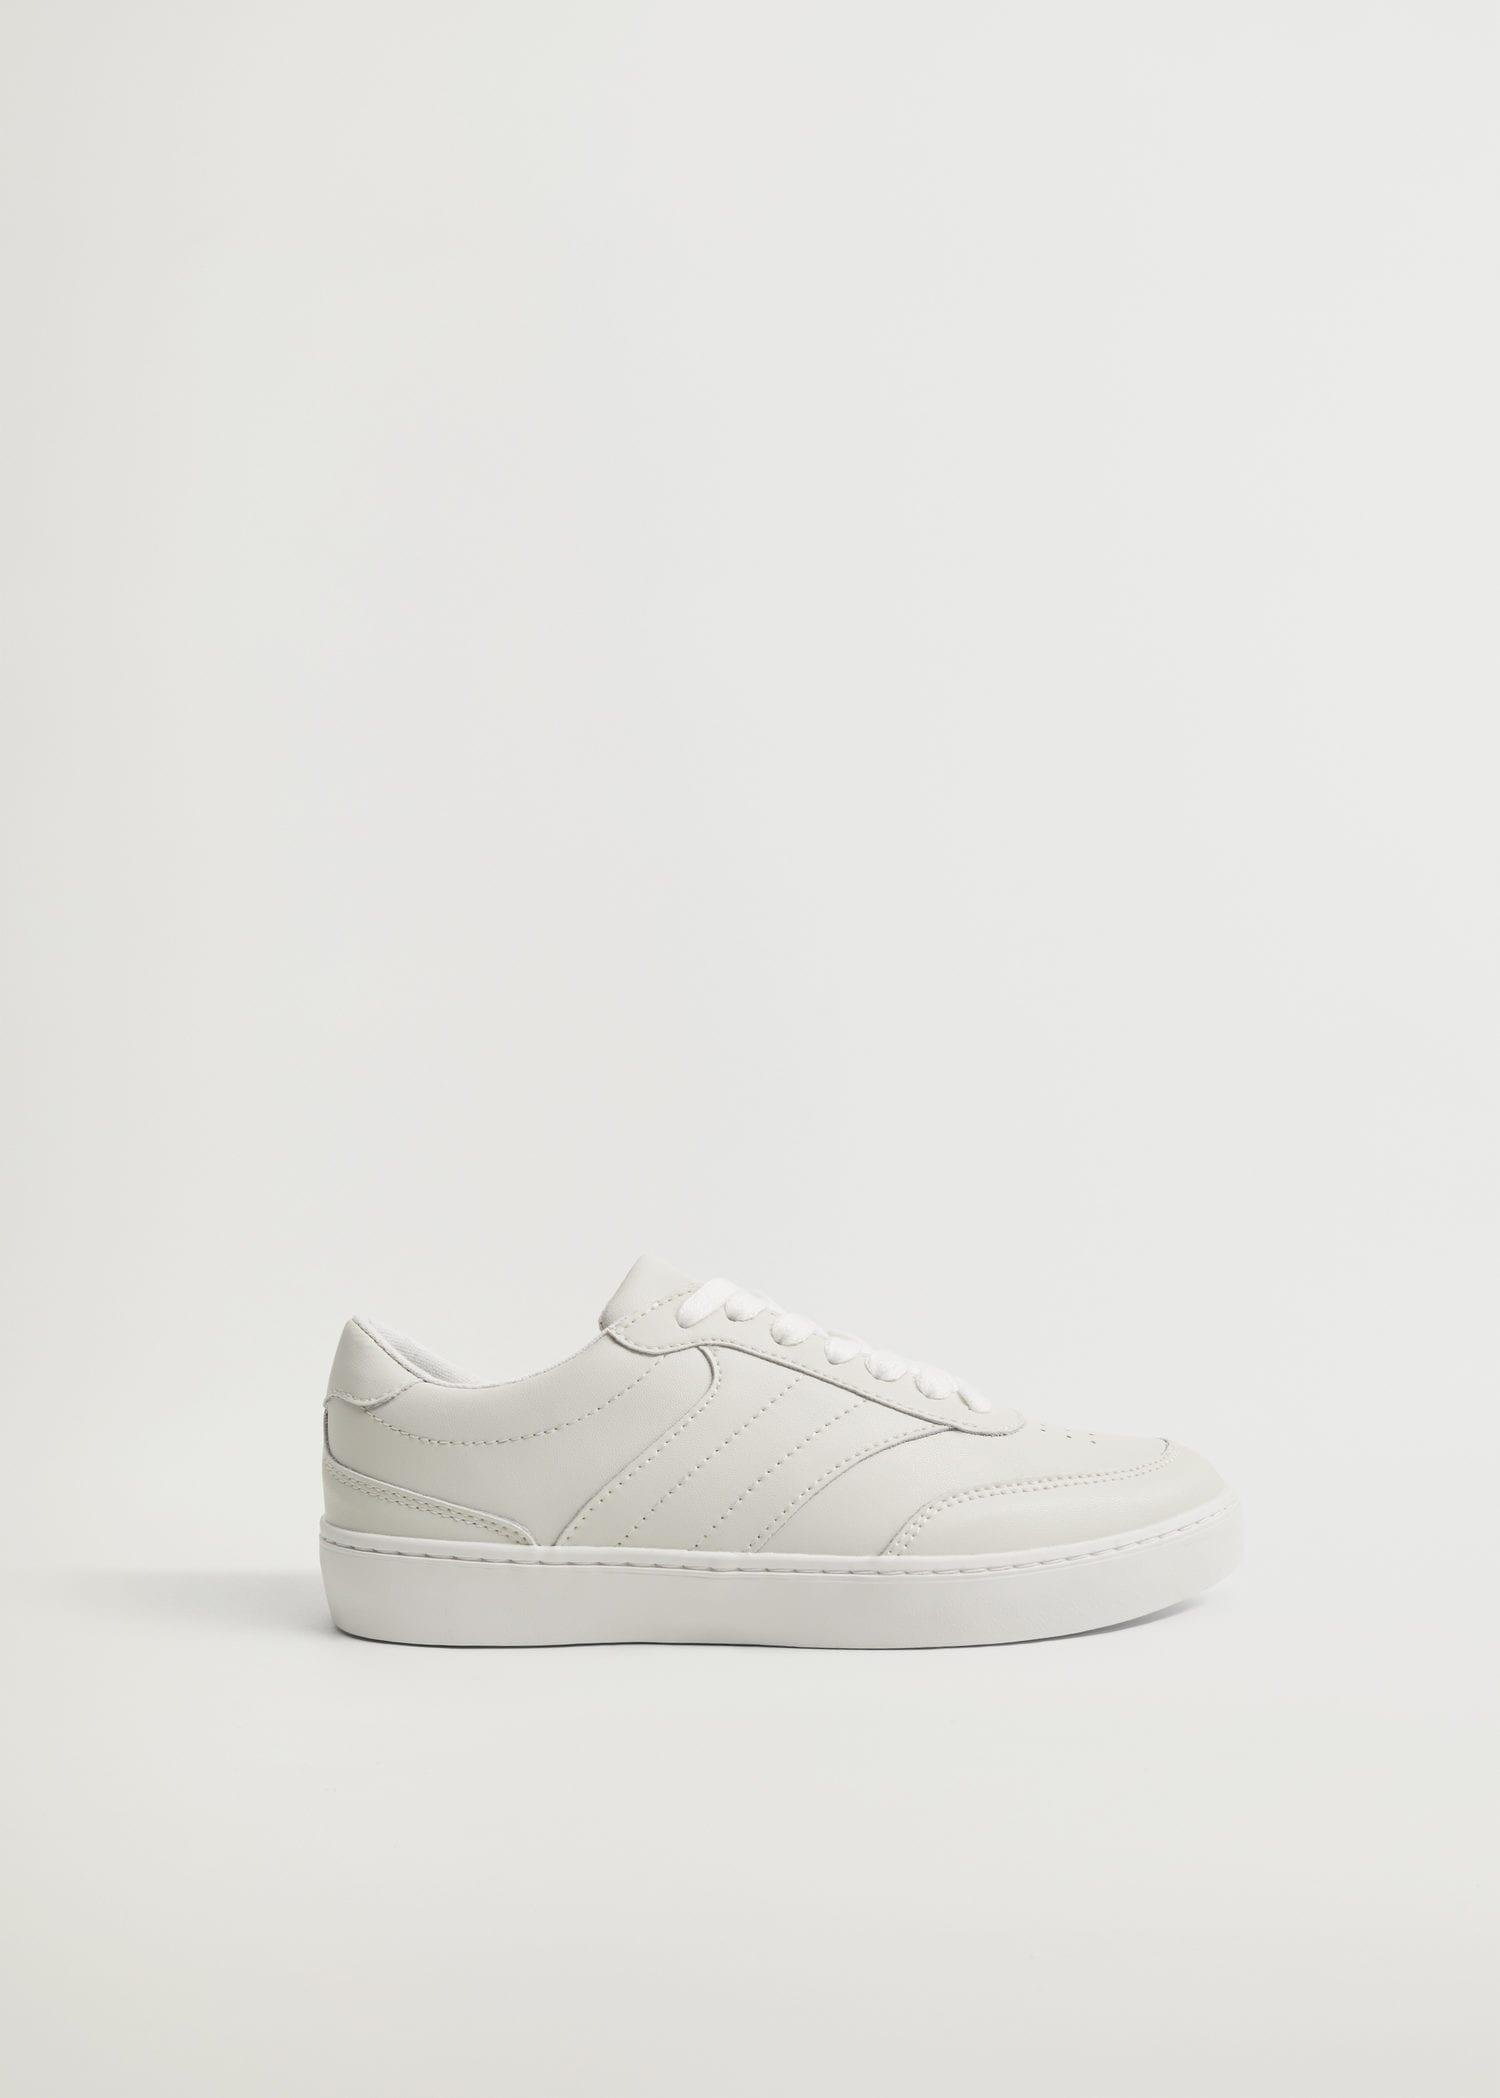 Lace-up leather sneakers